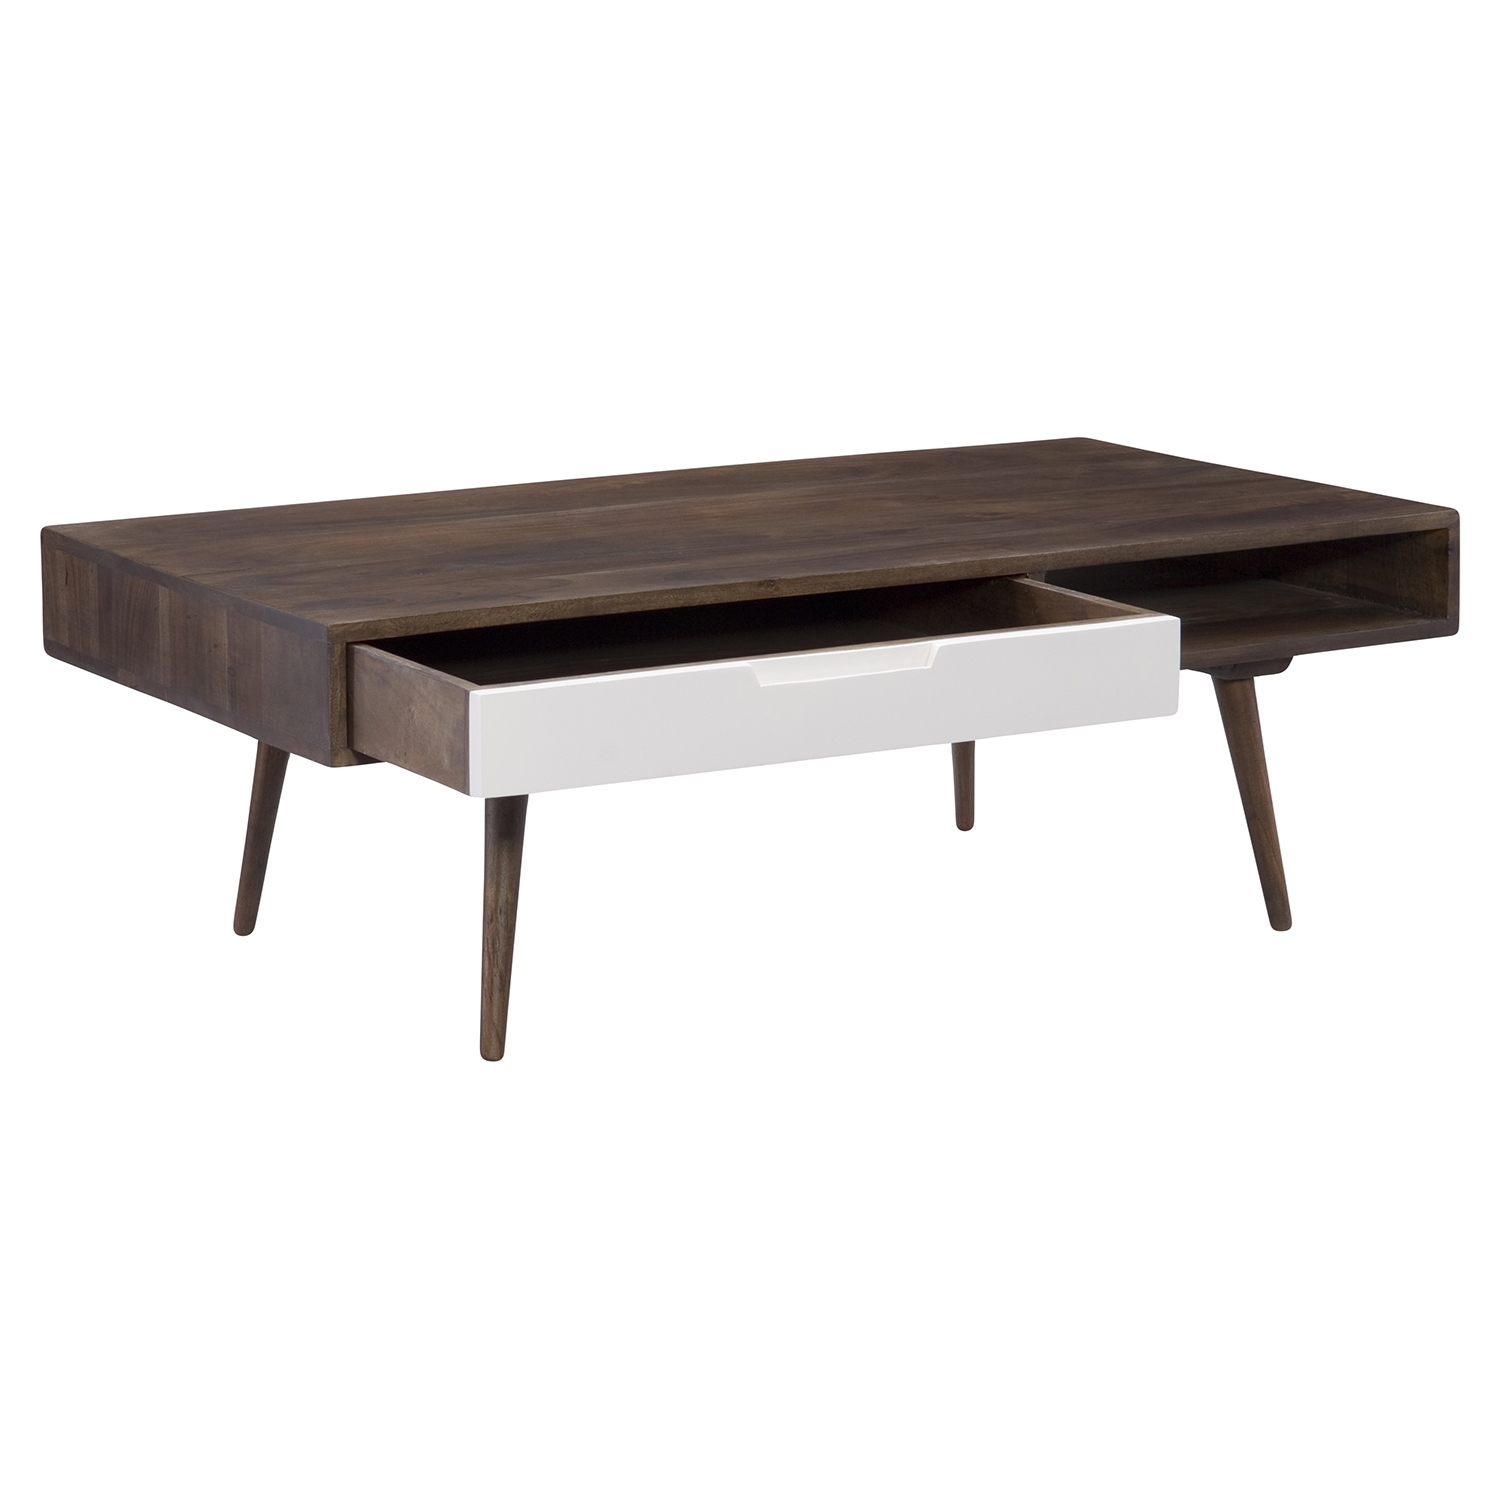 Blossom Coffee Table - 1 Drawer, Brown - MOES-BZ-1008-20